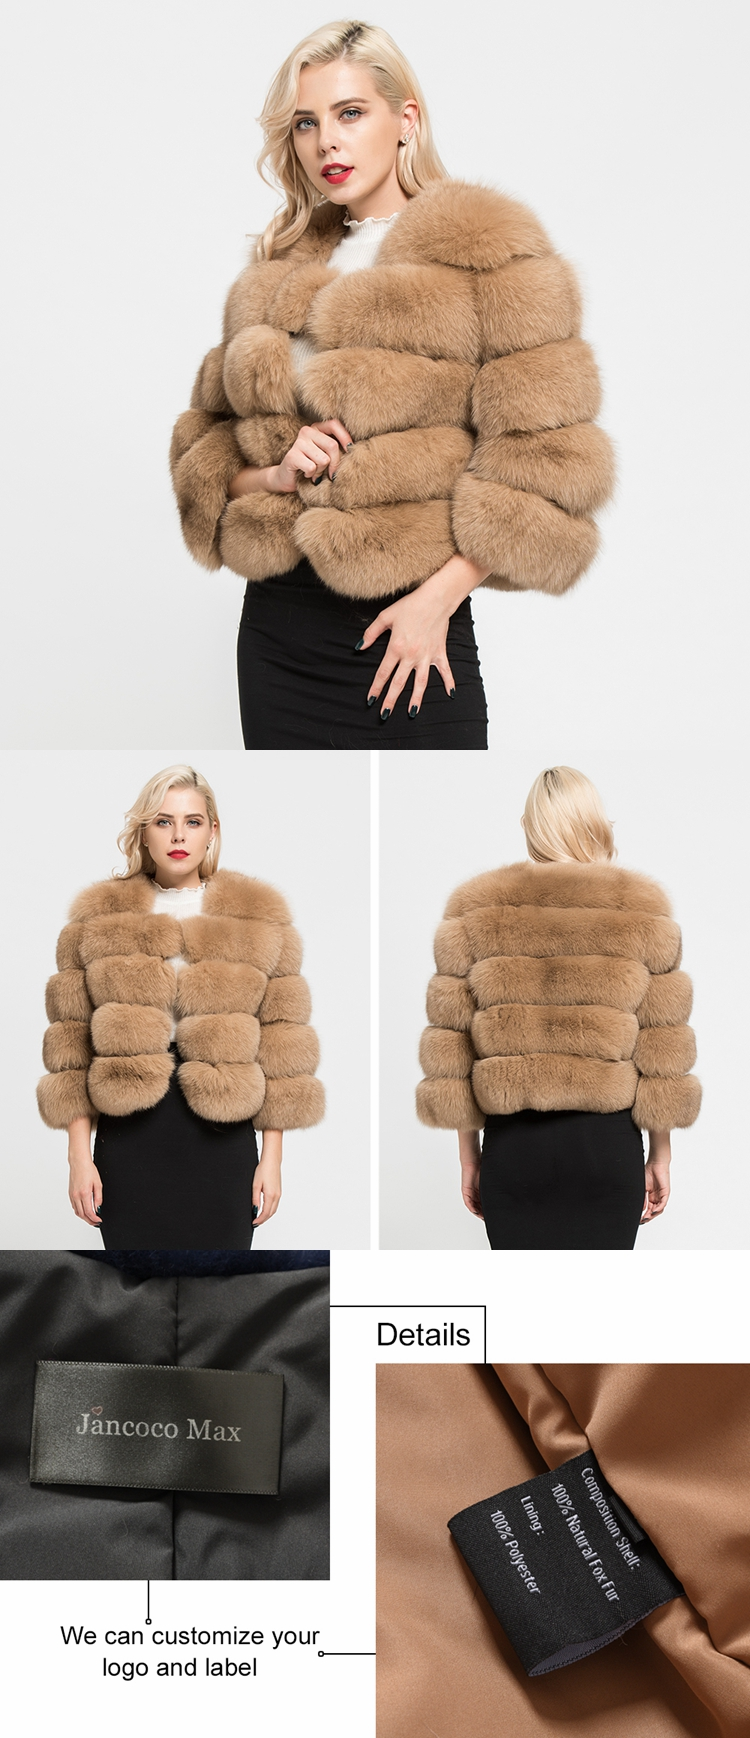 Luxury Women's Coats Real Natural Fox Fur 5 Rows Coat High Quality Outwear Winter Cropped Sleeves Jacket S1796